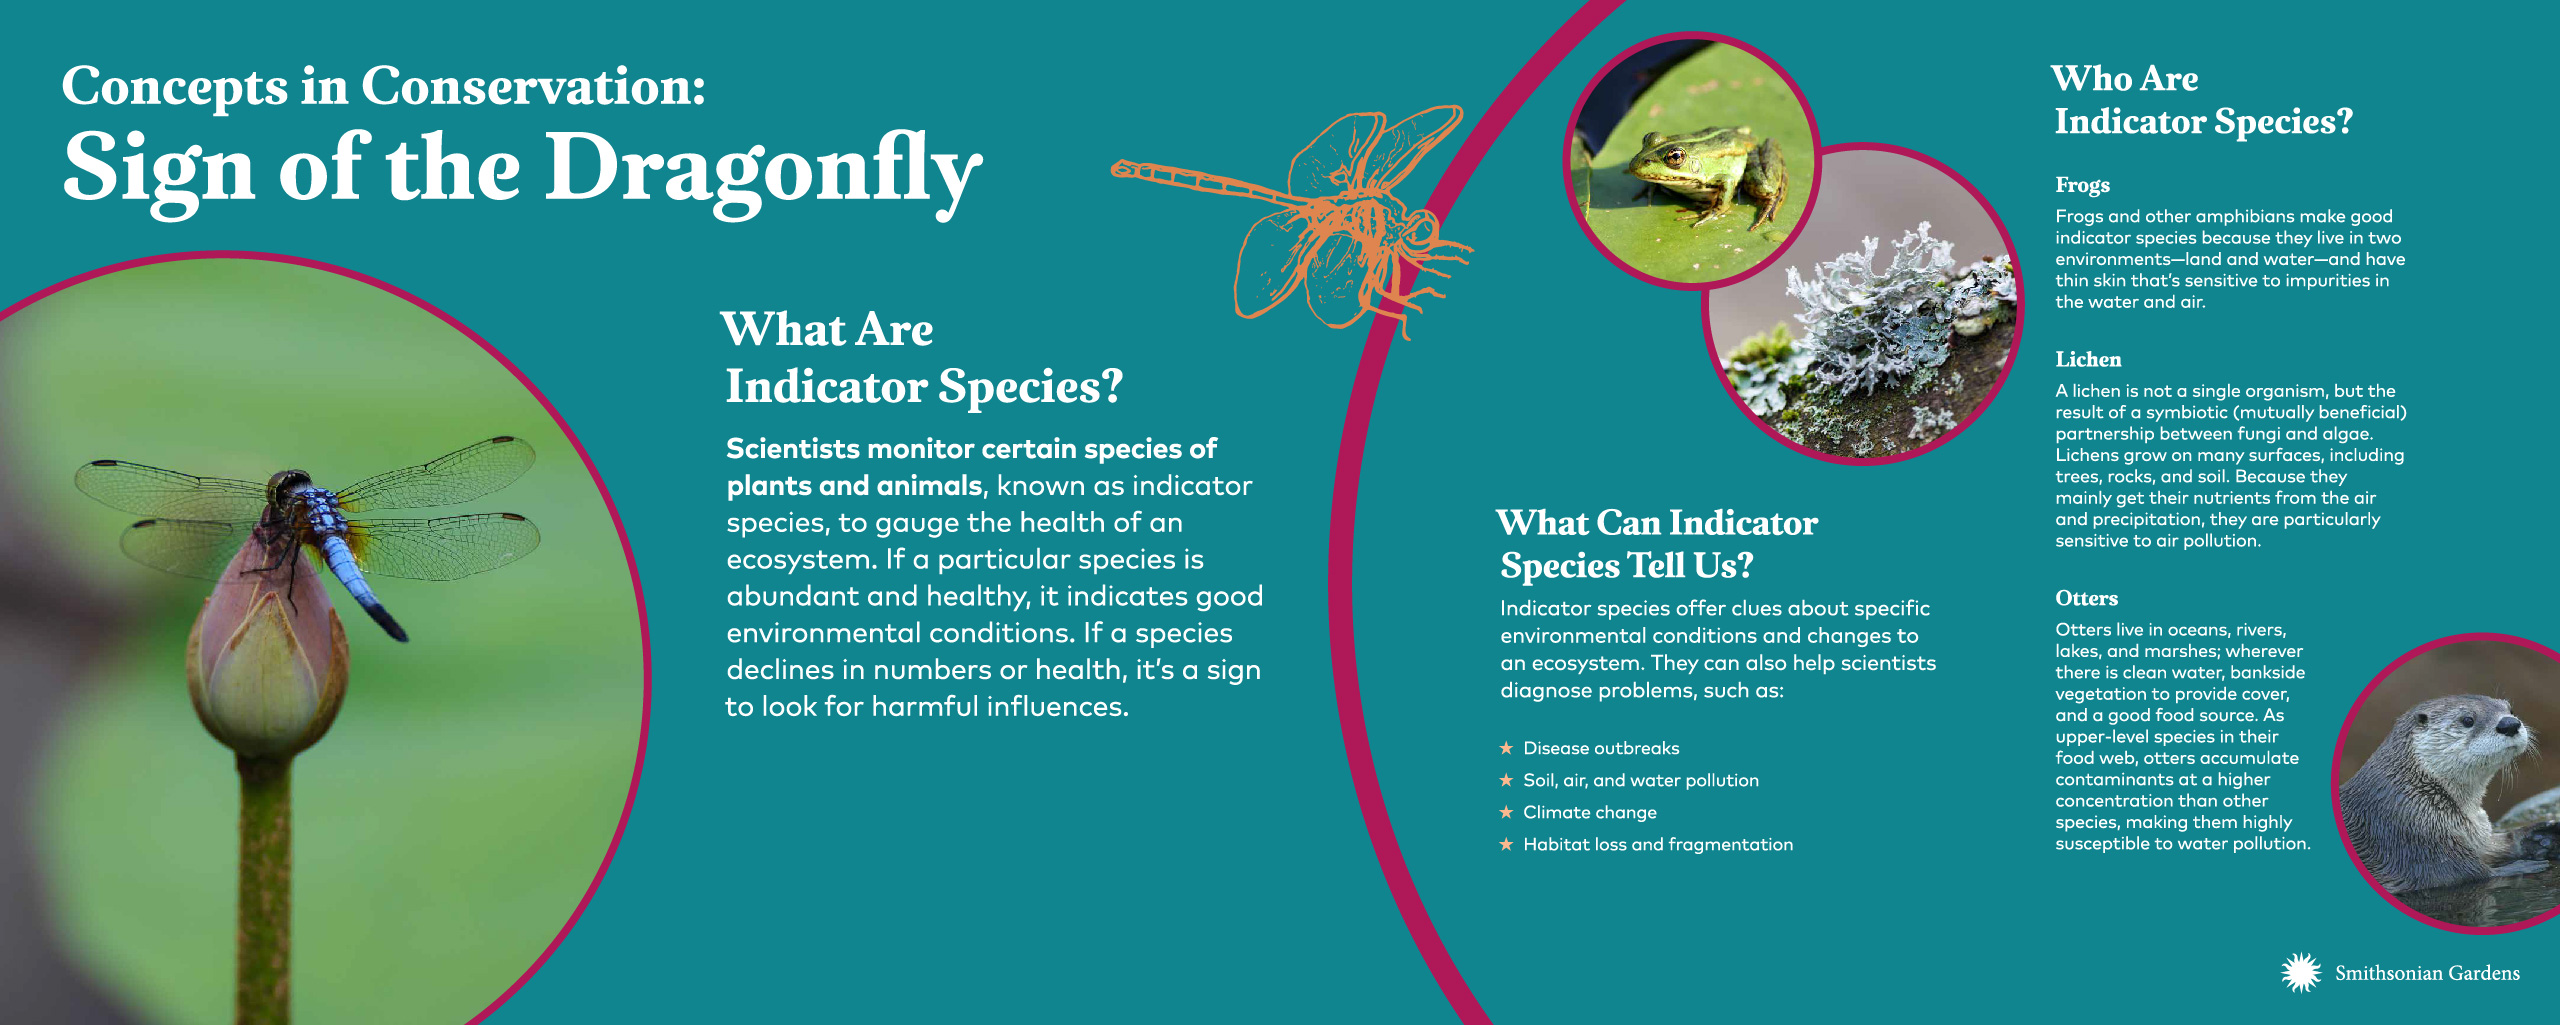 Concepts in Conservation: Sign of the Dragonfly exhibit panel